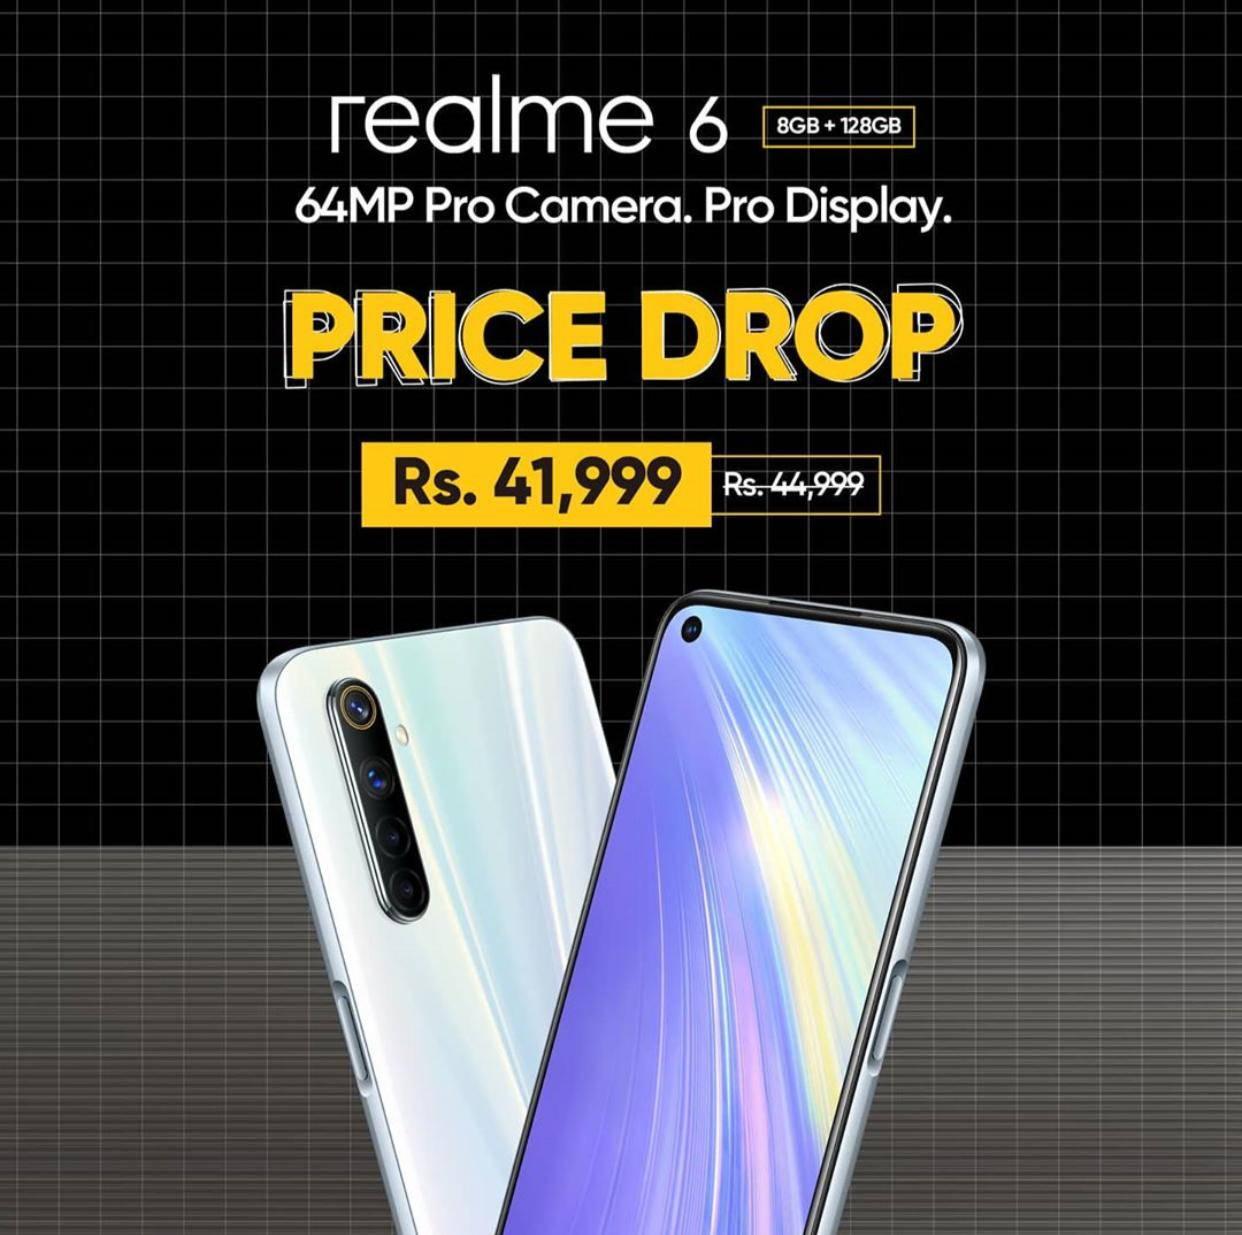 Realme 6 is now offered at Rs 41,999